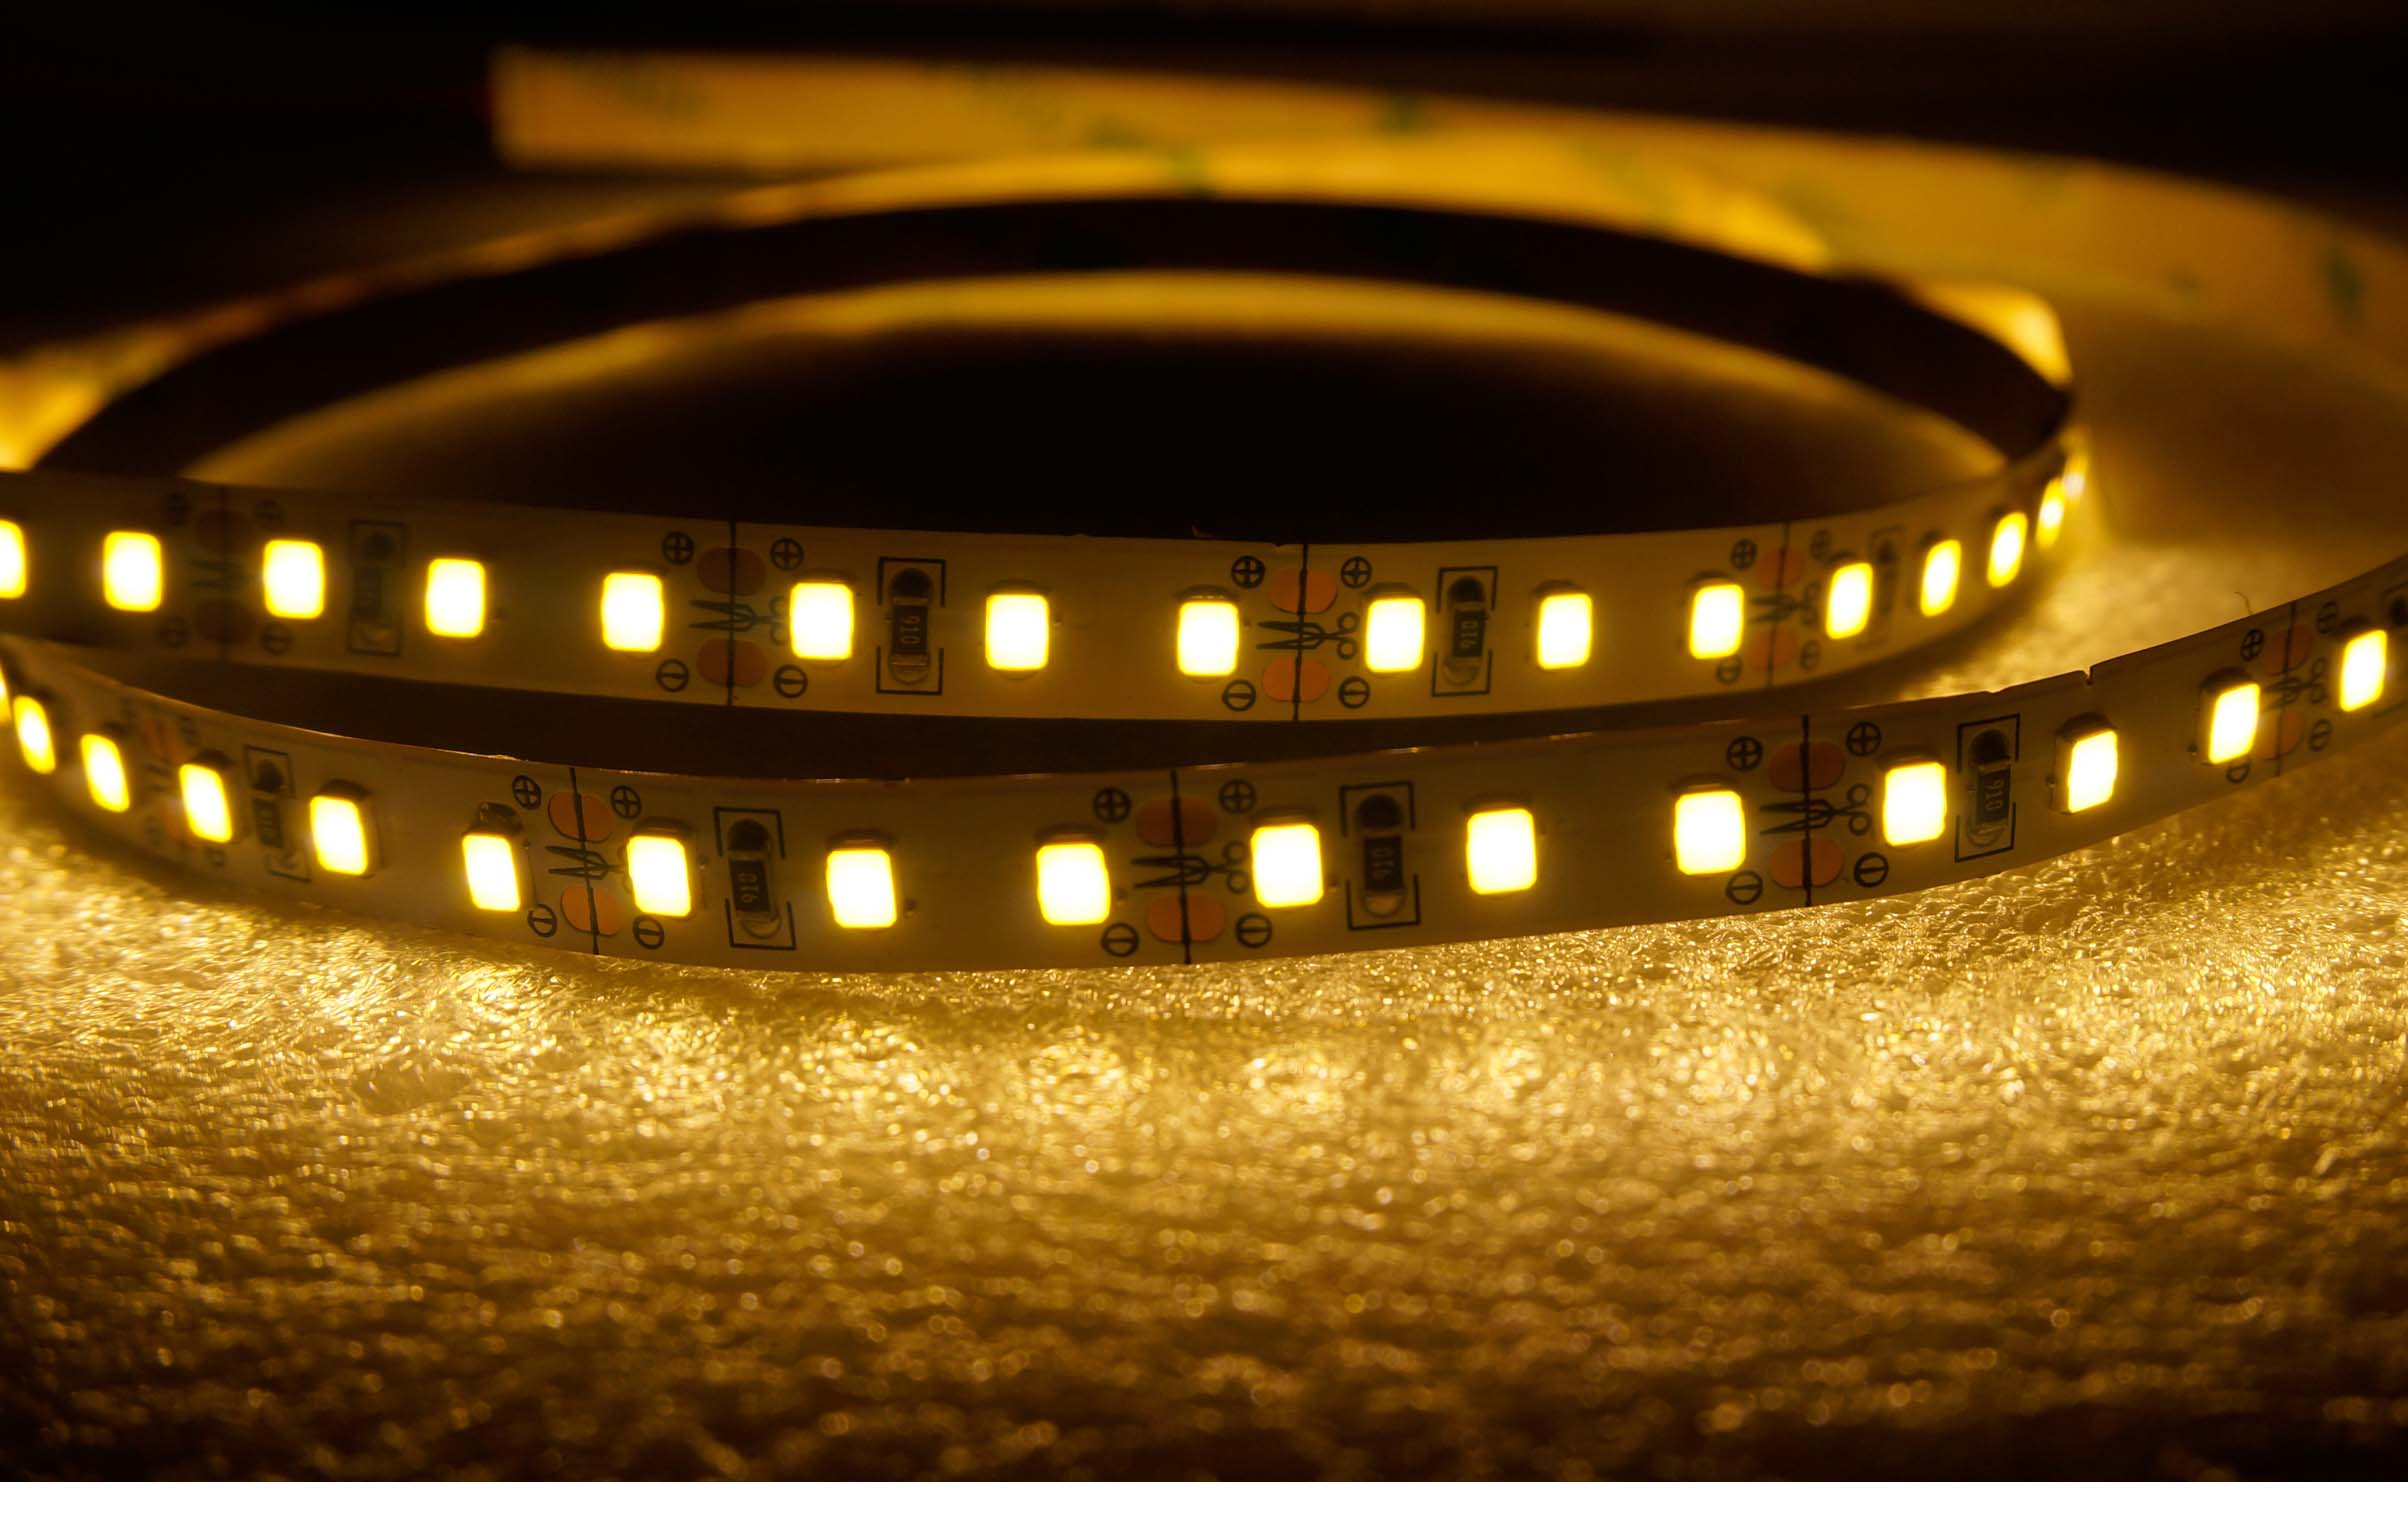 SMD2835-120leds 7W/m warm white IP20 LED flexible strip light